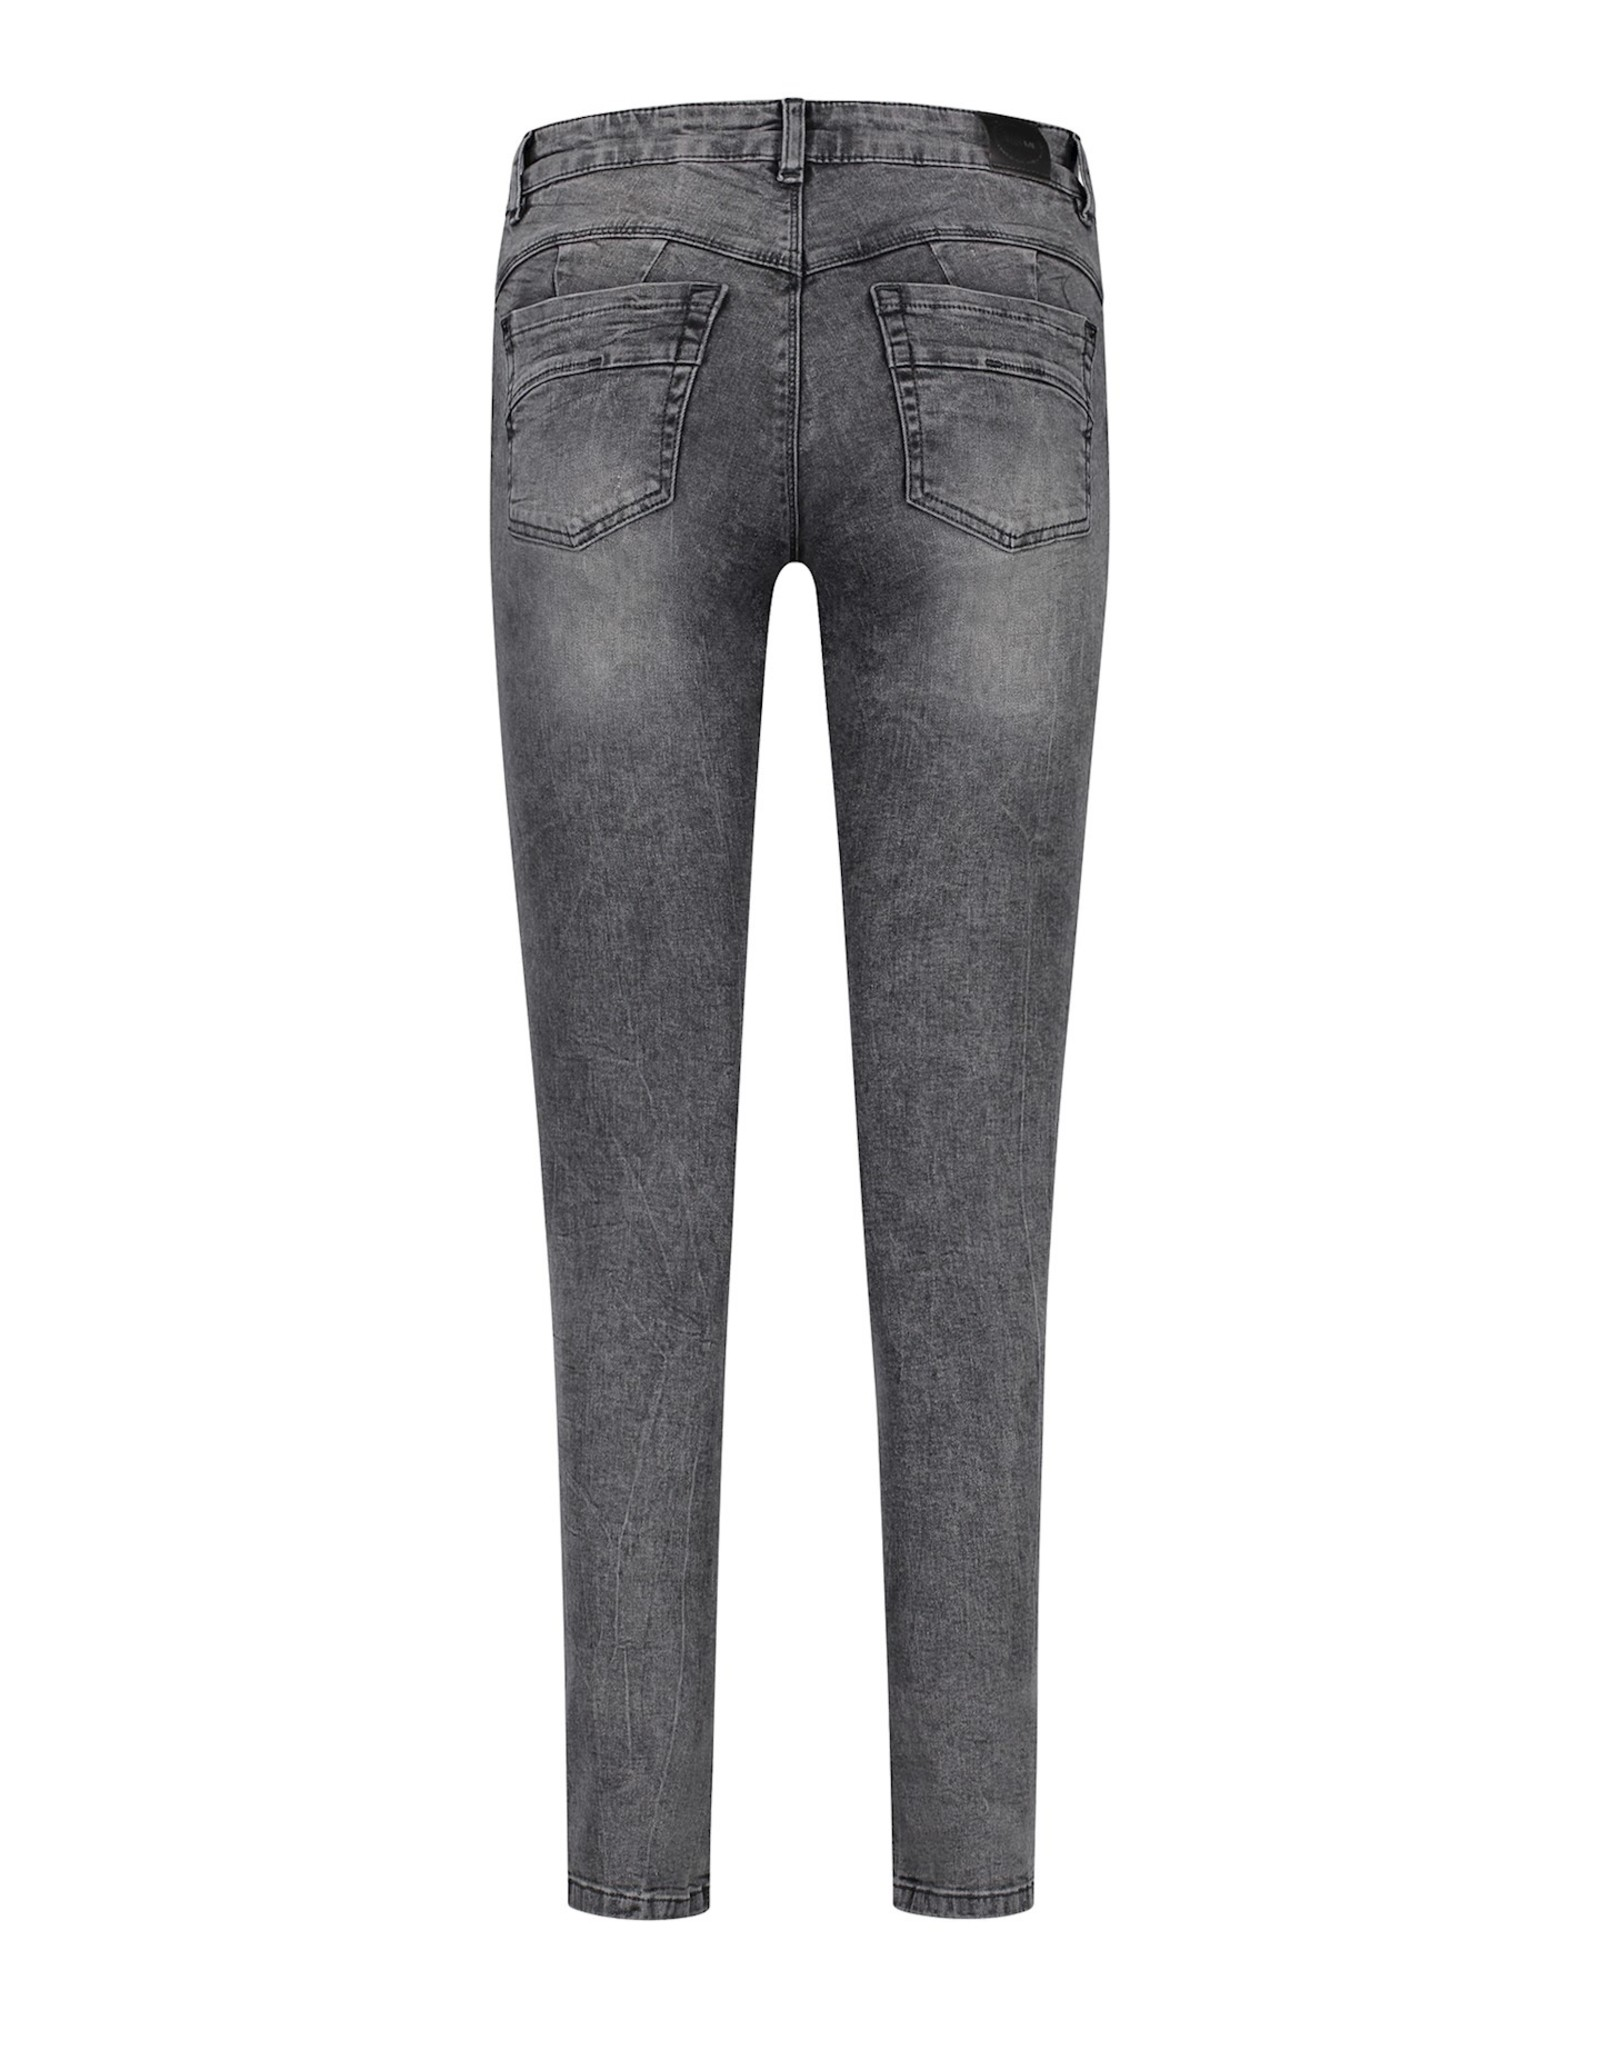 Para MI Jacky P-Form Denim Cloudly Grey L30.